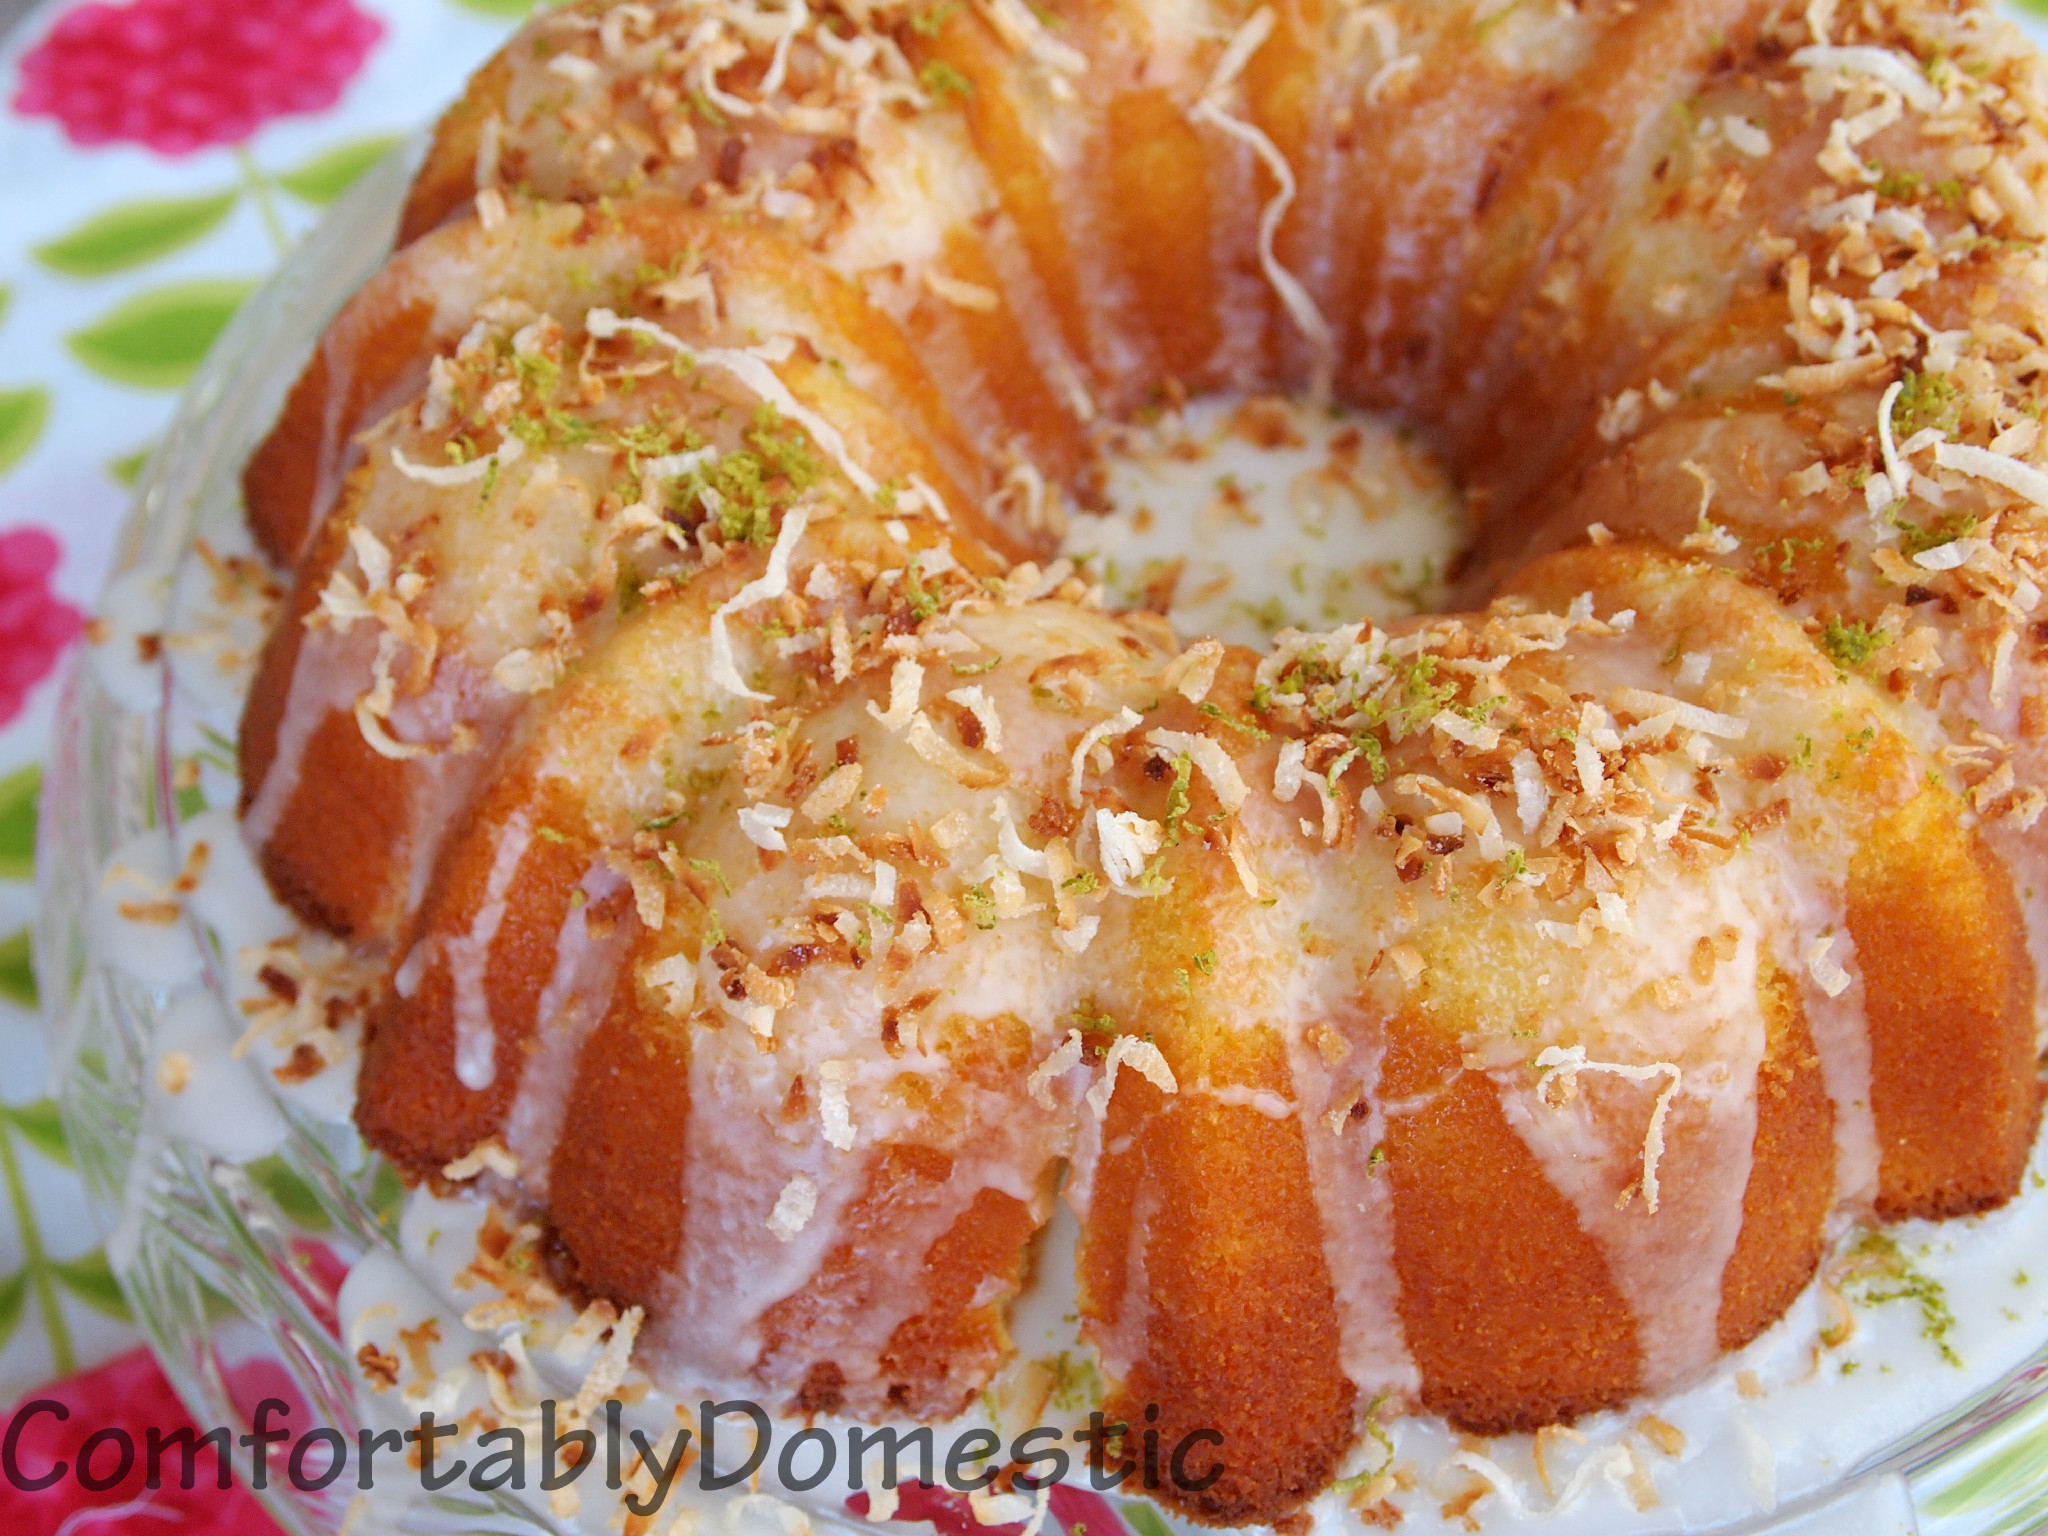 Coconut Bundt Cake With Key Lime Glaze Comfortablydomestic Com